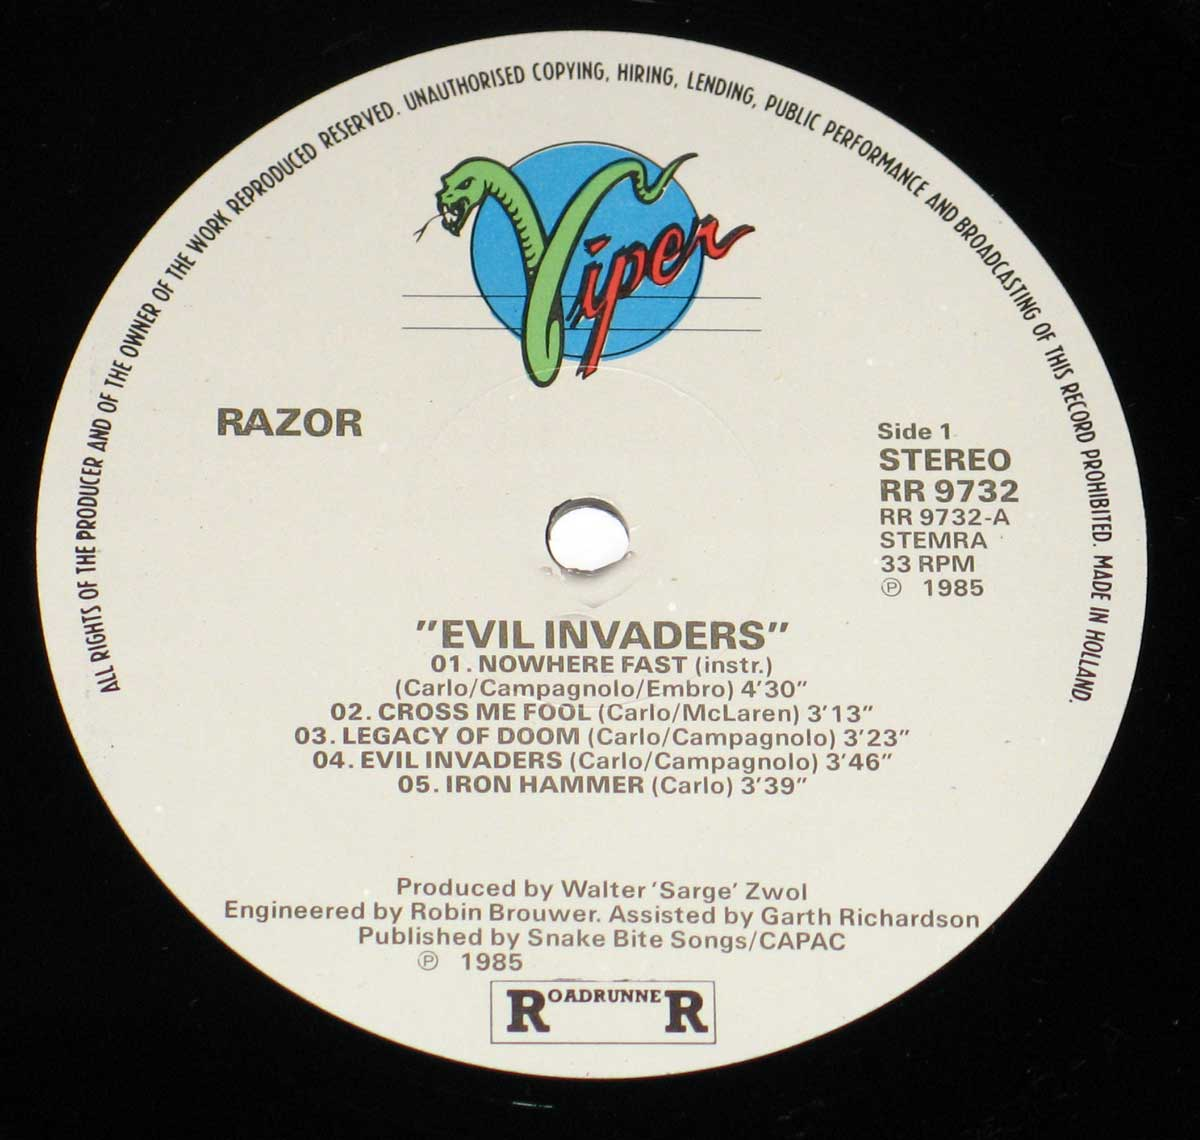 Enlarged High Resolution Photo of the Record's label RAZOR - Evil Invaders https://vinyl-records.nl